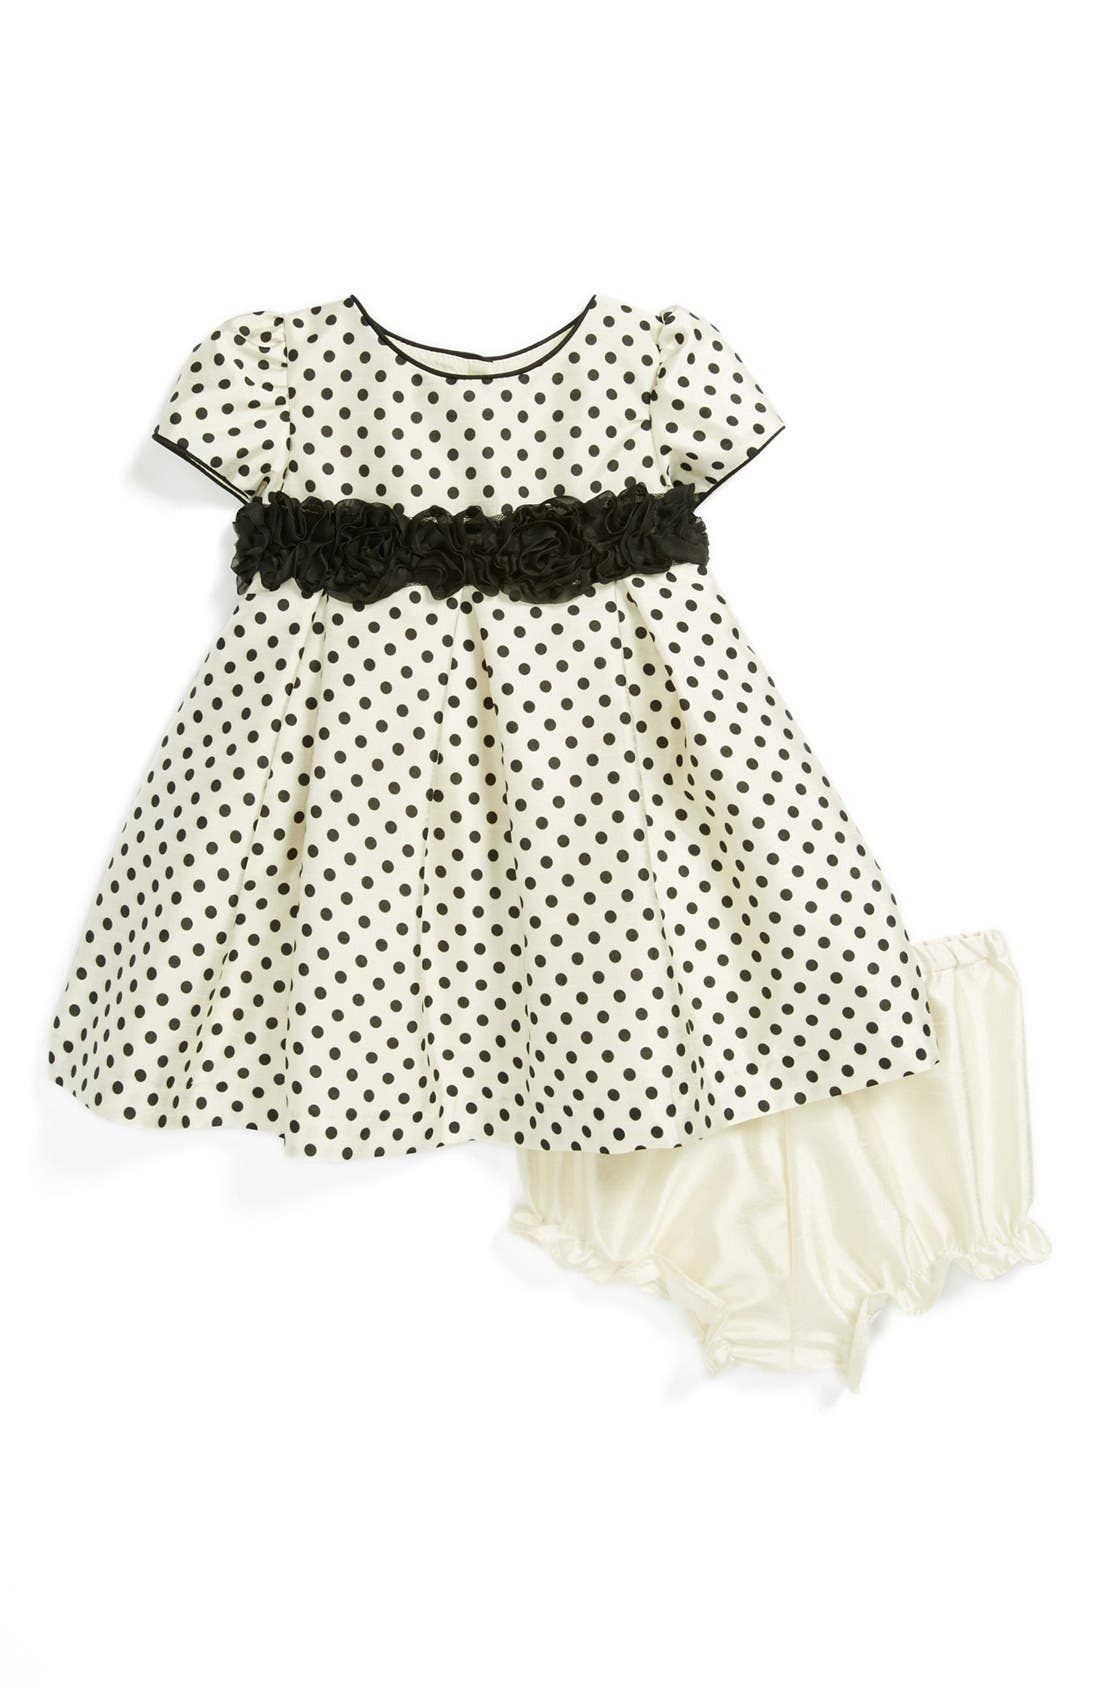 Alternate Image 1 Selected - Pippa & Julie Dress & Bloomers (Baby Girls)